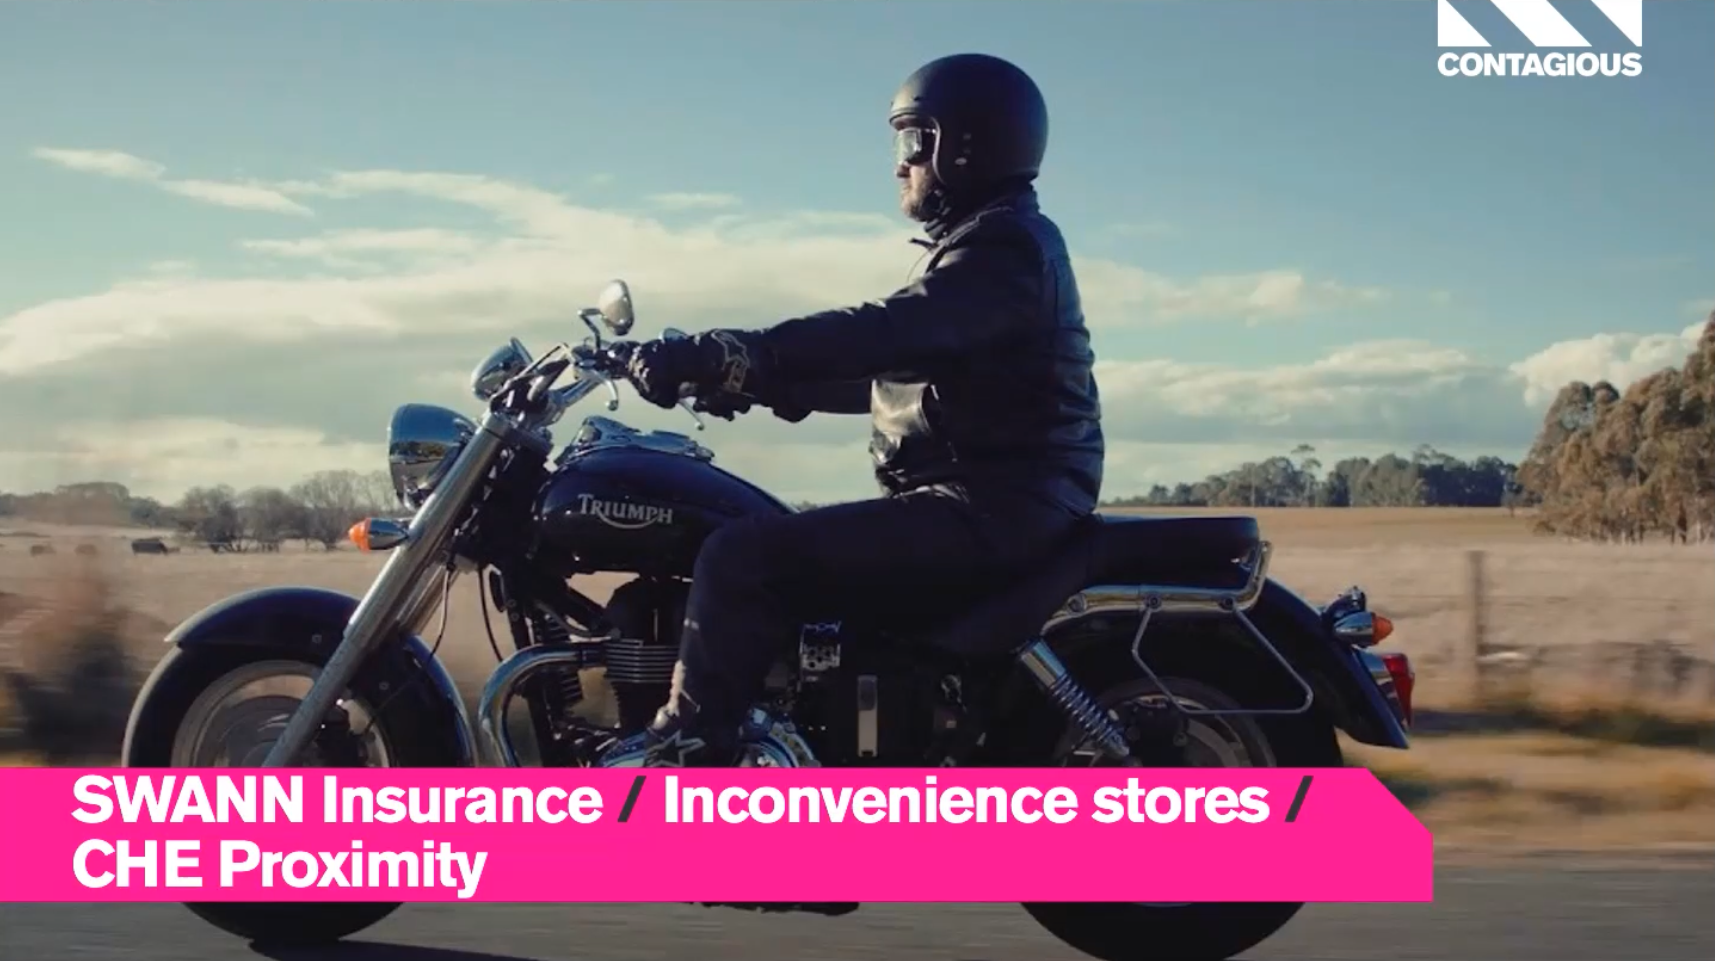 Audiense blog - SWANN Insurance | Inconvenience Stores | CHE Proxmity